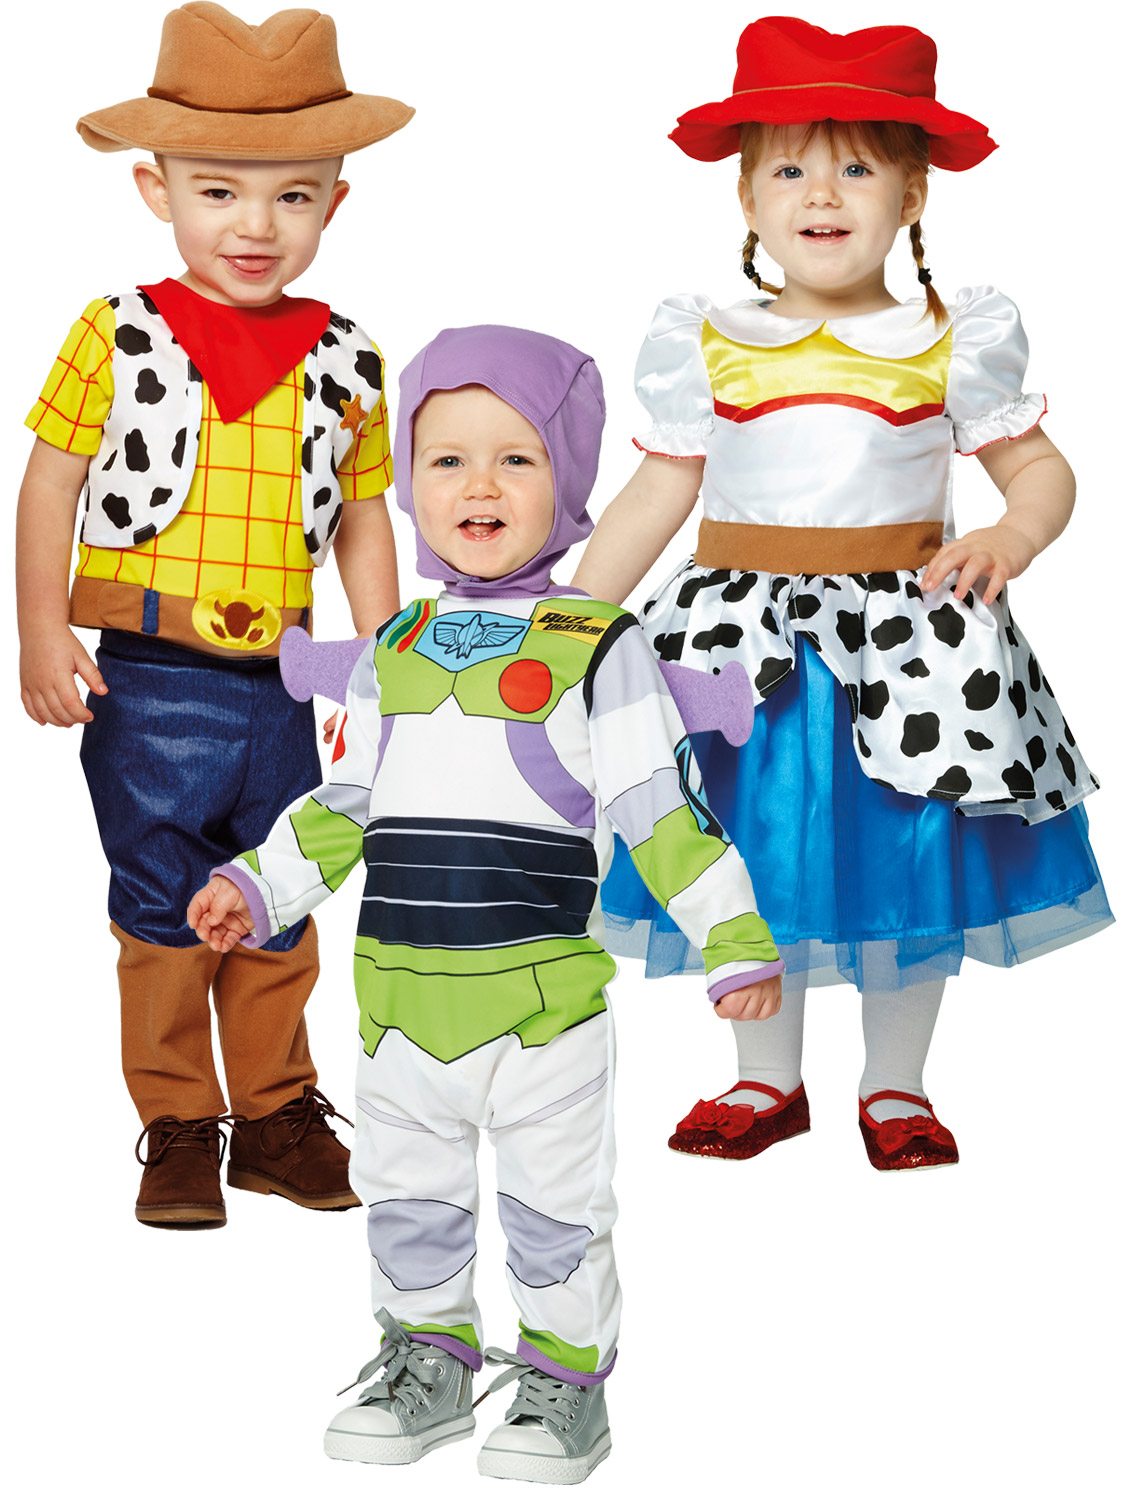 Transform your child into one of there favourite characters from Toy Story with these deluxe Travis Design Buzz Woody or Jessie Costumes!  sc 1 st  eBay & Childs Disney Toy Story Costume Boys Girls Buzz Woody Jessie Travis ...